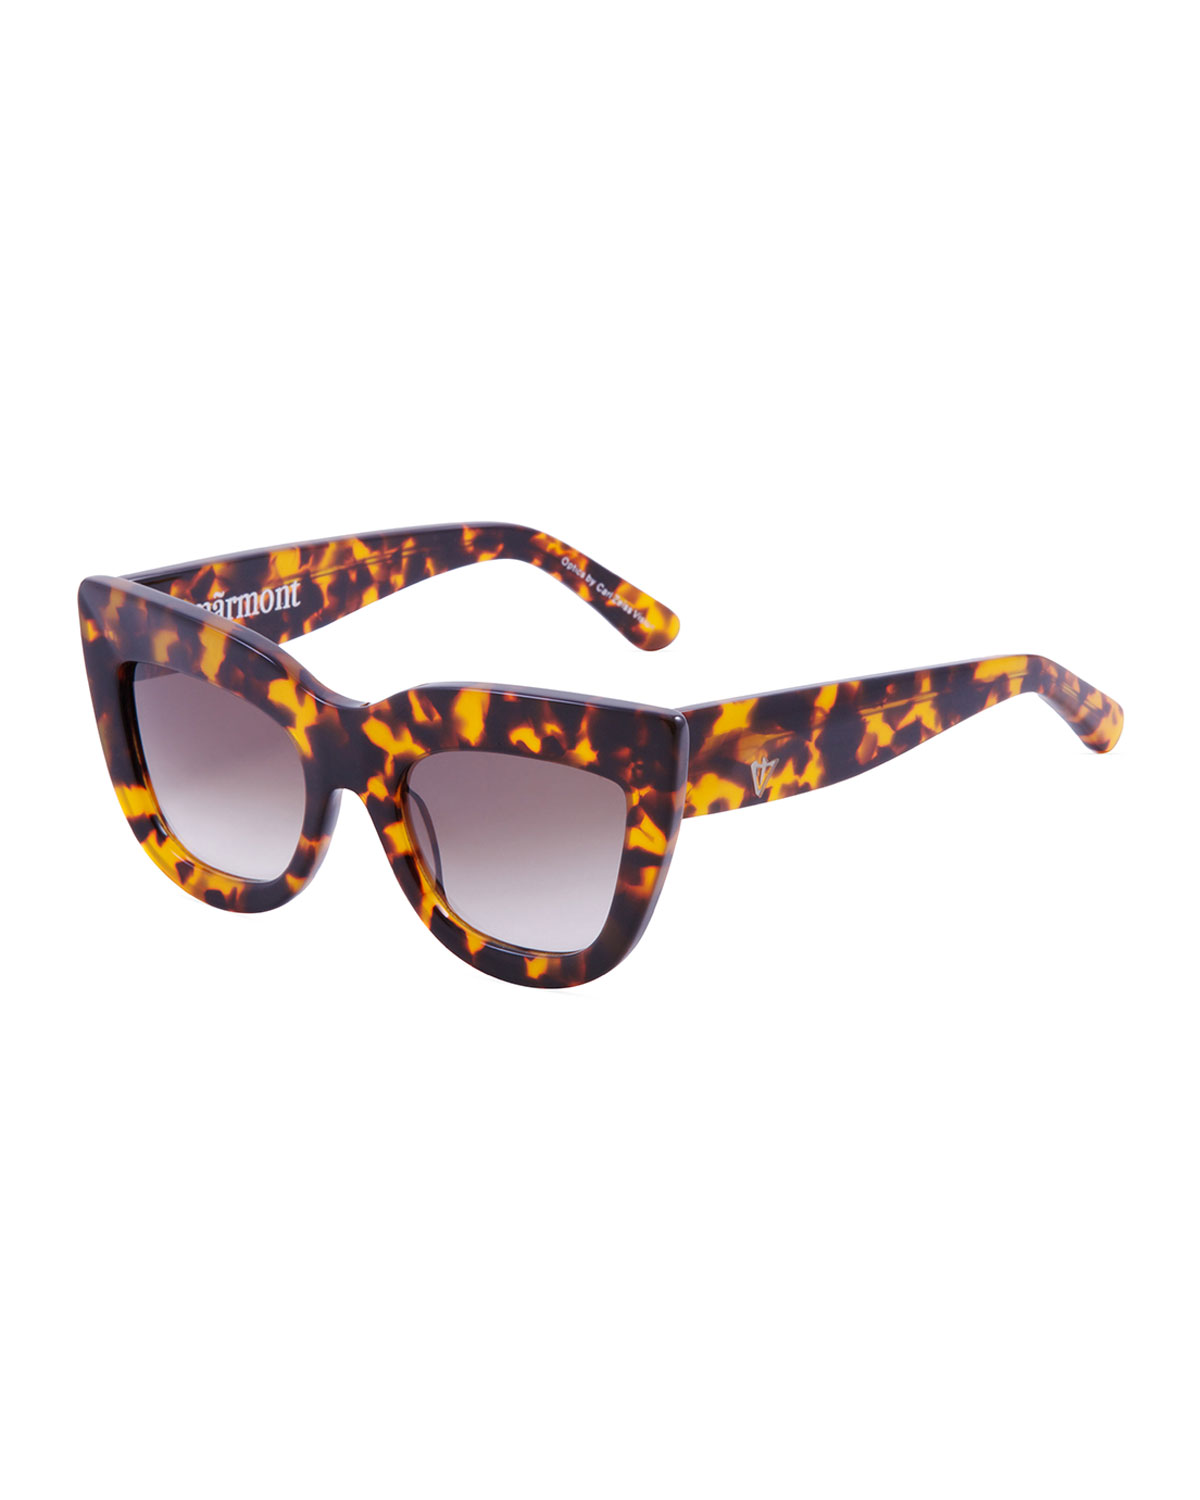 Tortoise Shell Cateye